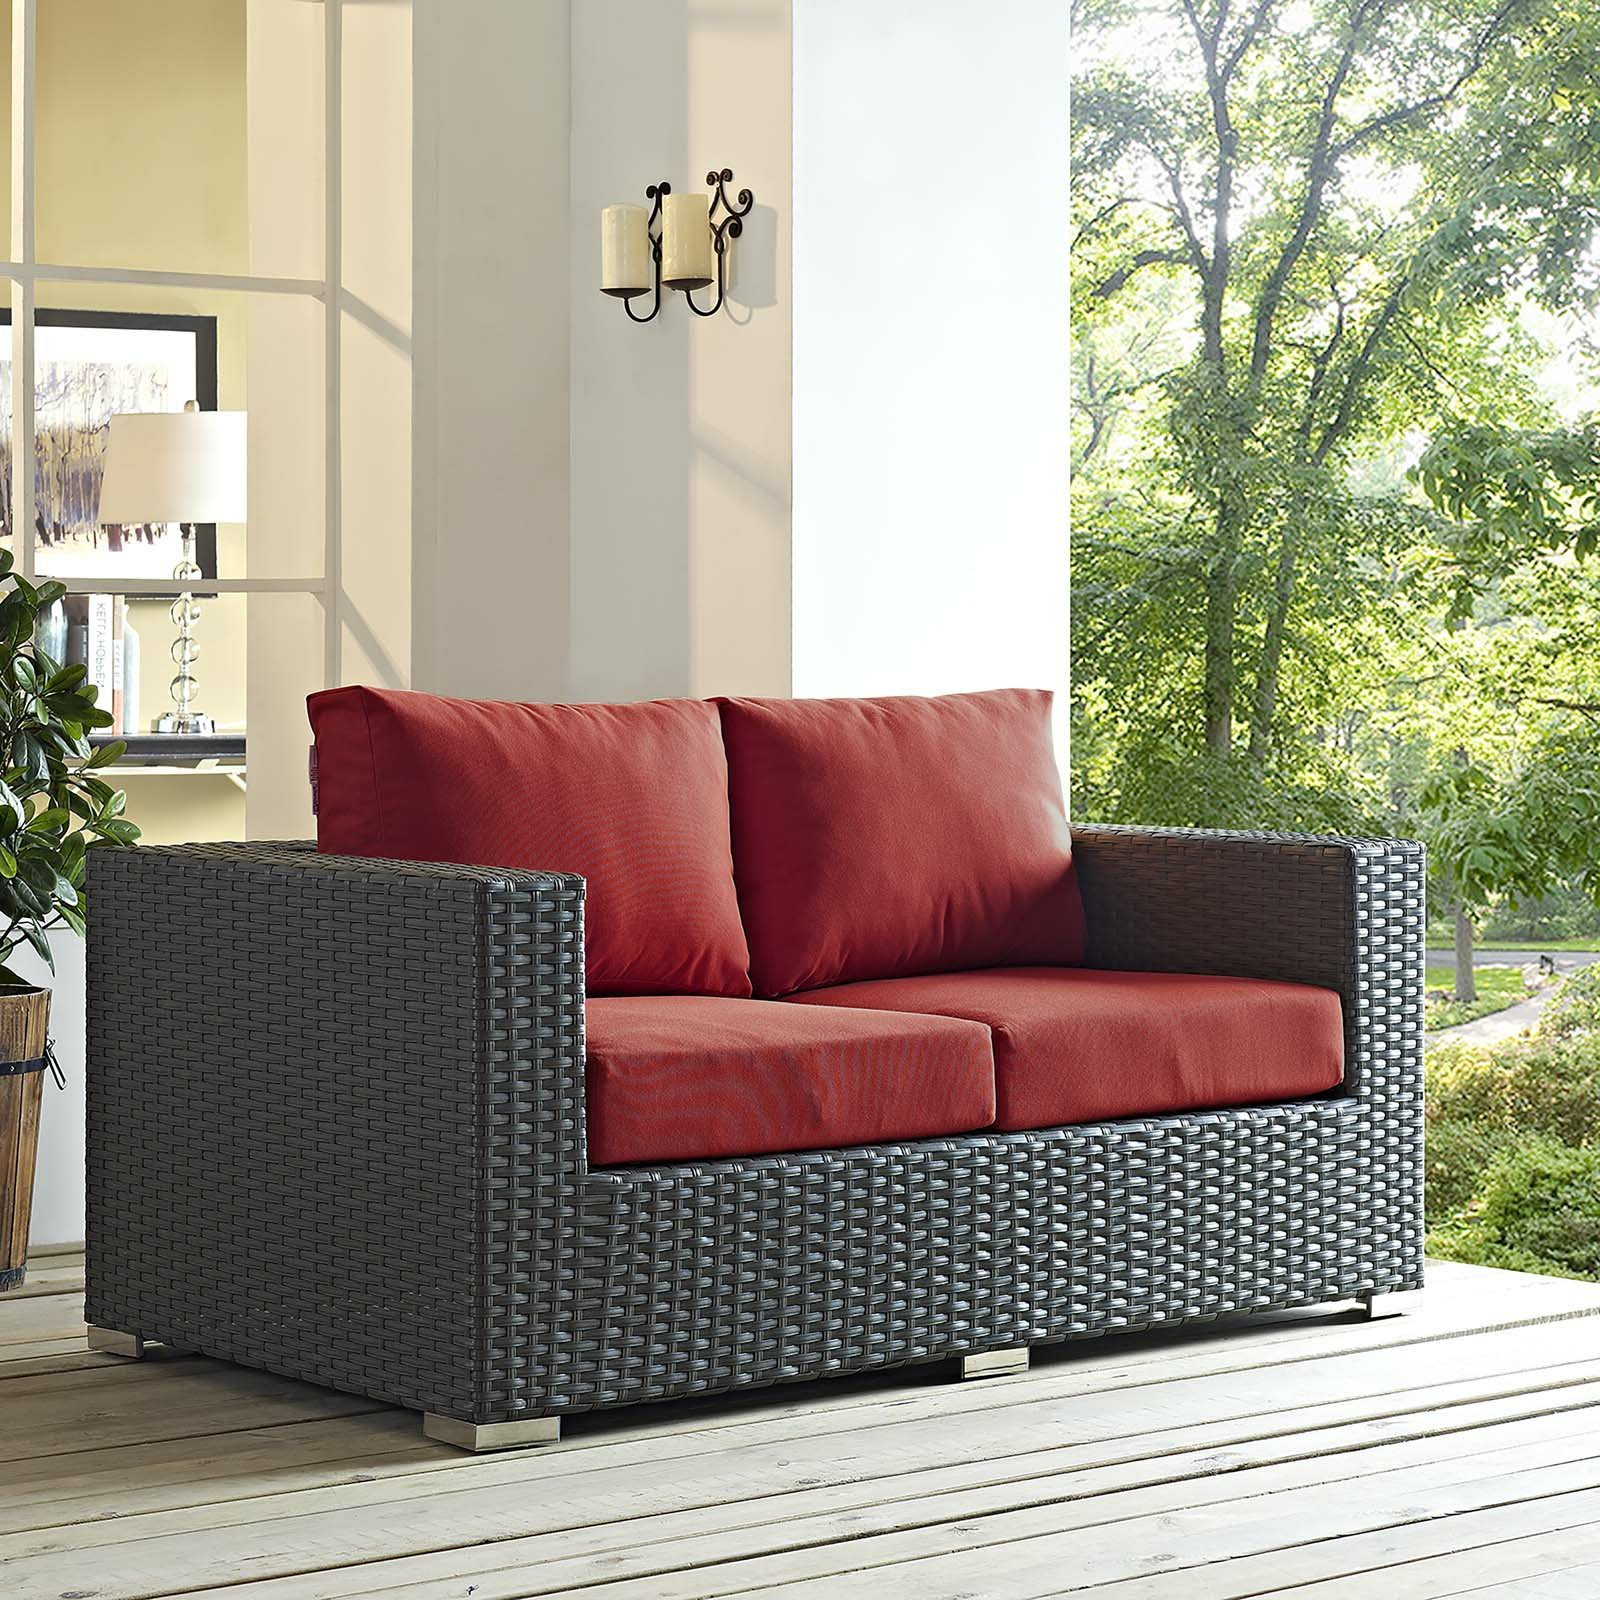 Tripp Loveseat With Cushions With Trendy Tripp Sofas With Cushions (View 11 of 25)